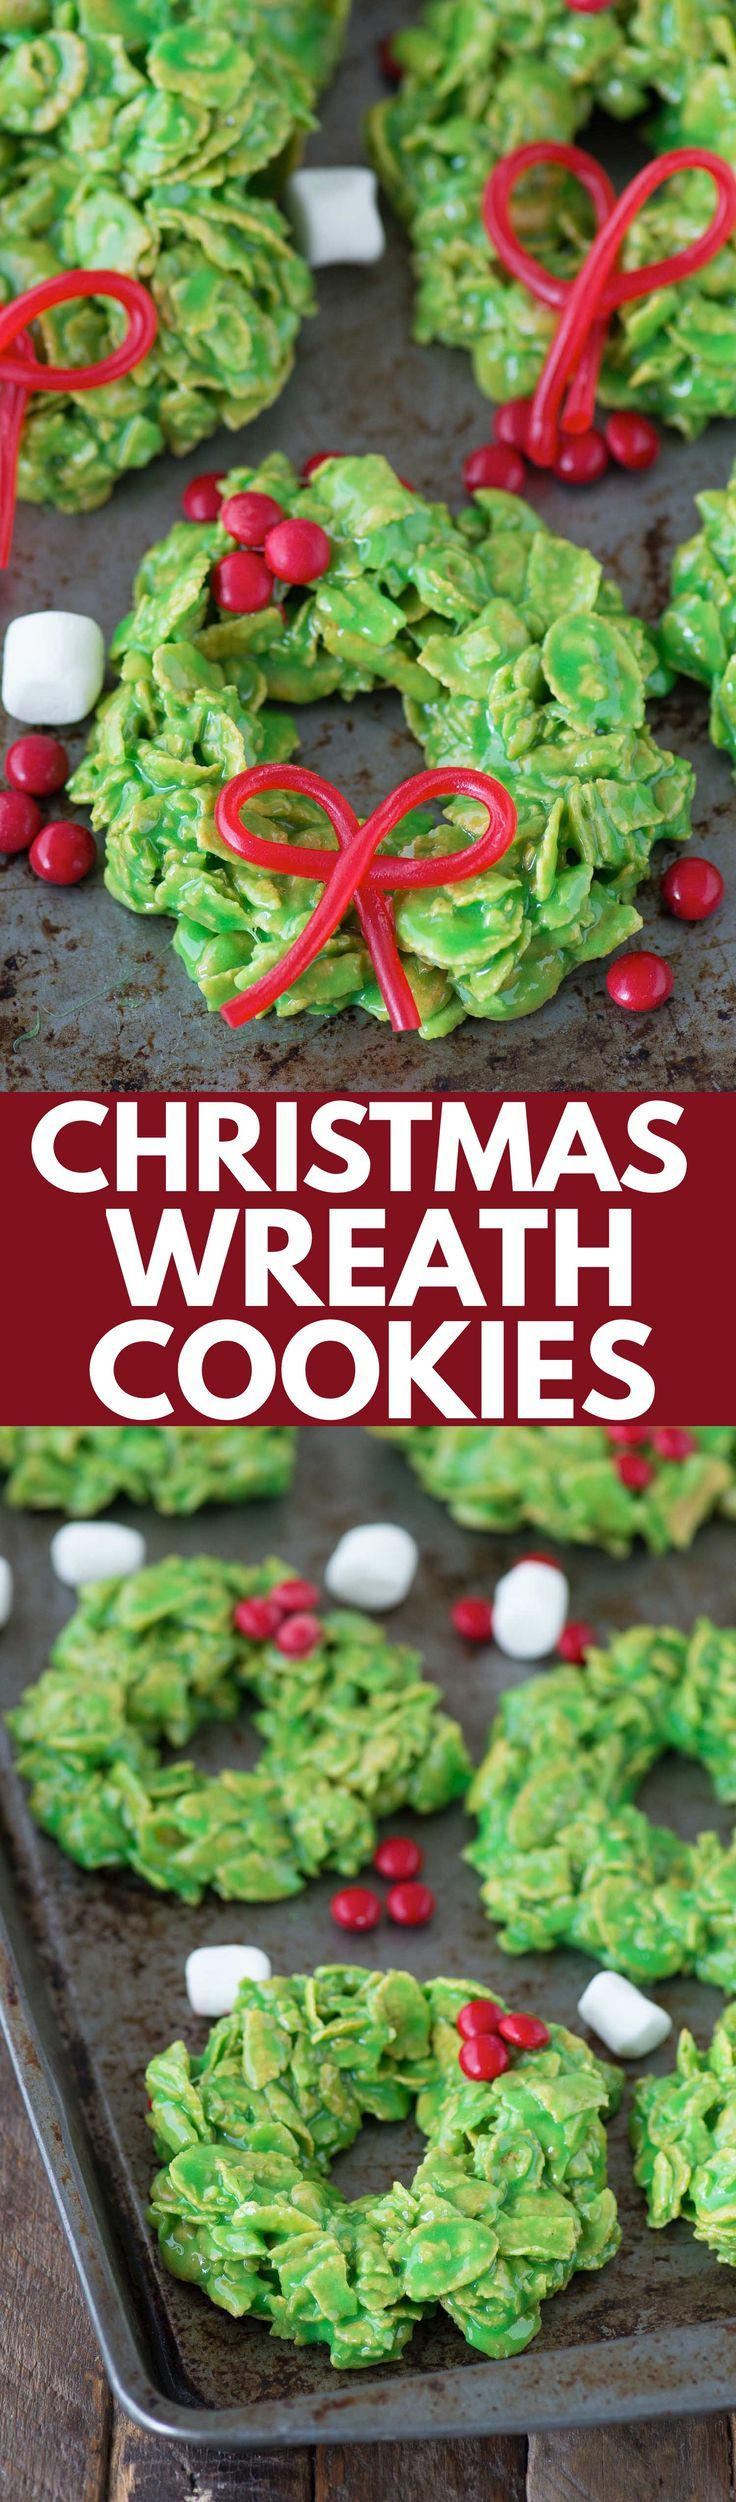 No Bake Christmas Wreath Cookies Made With Corn Flakes And